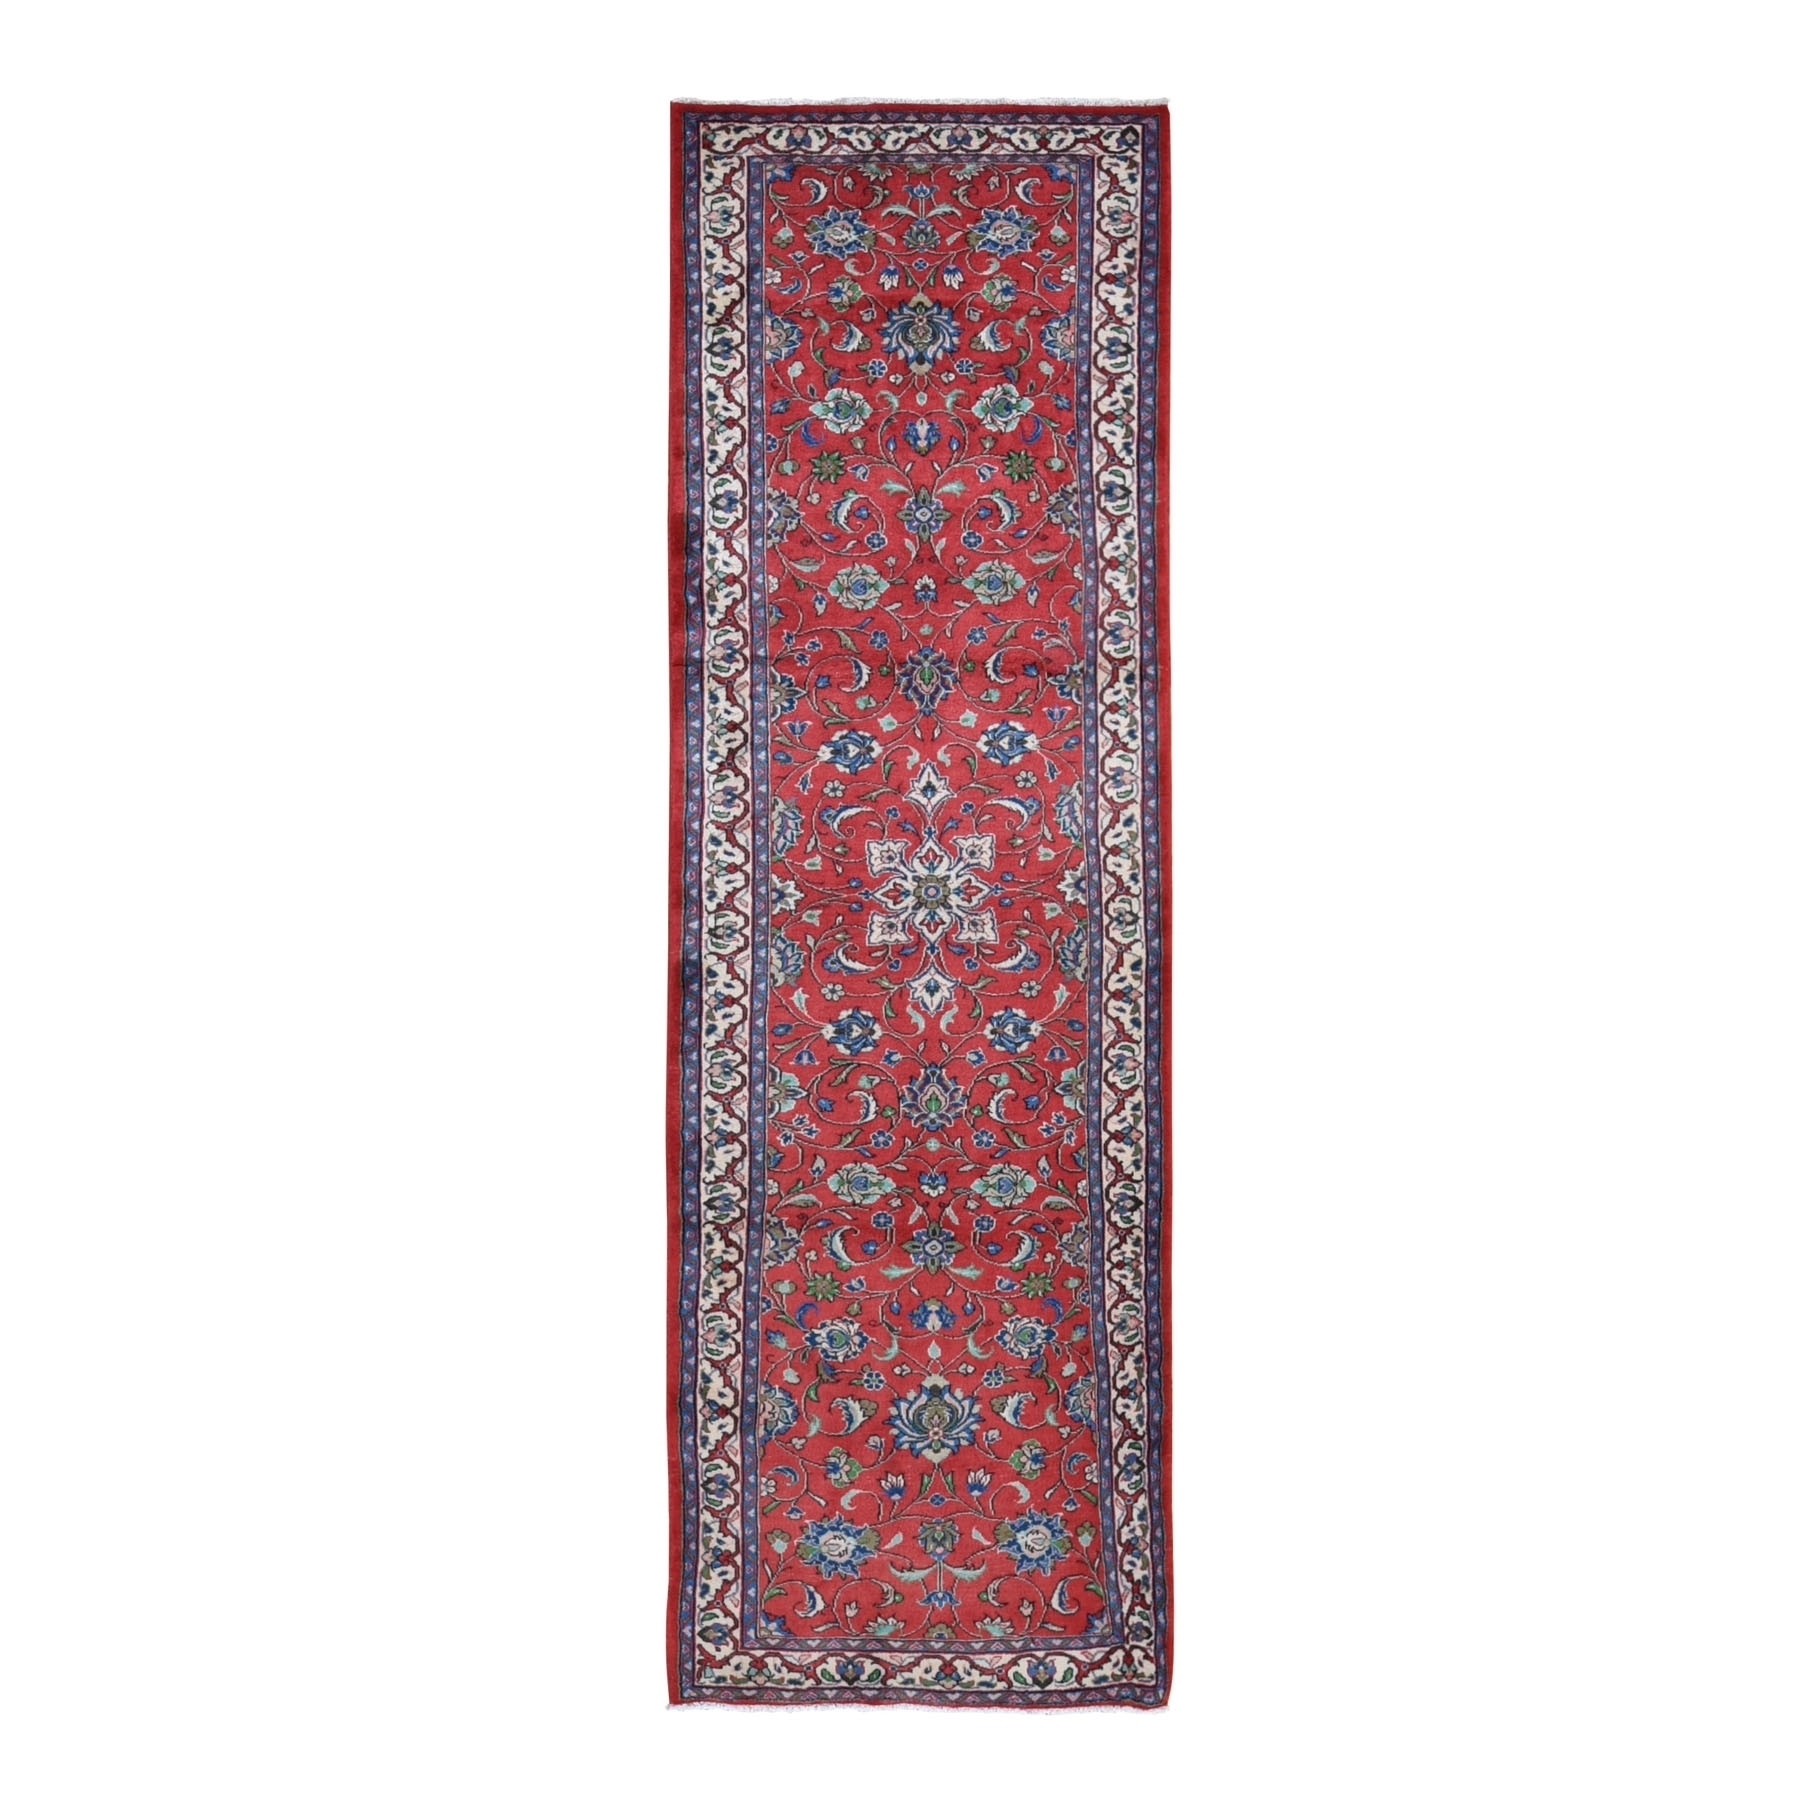 "3'X9'8"" Red New Persian Sarouk Pure Wool Hand Knotted Runner Oriental Rug moad989b"